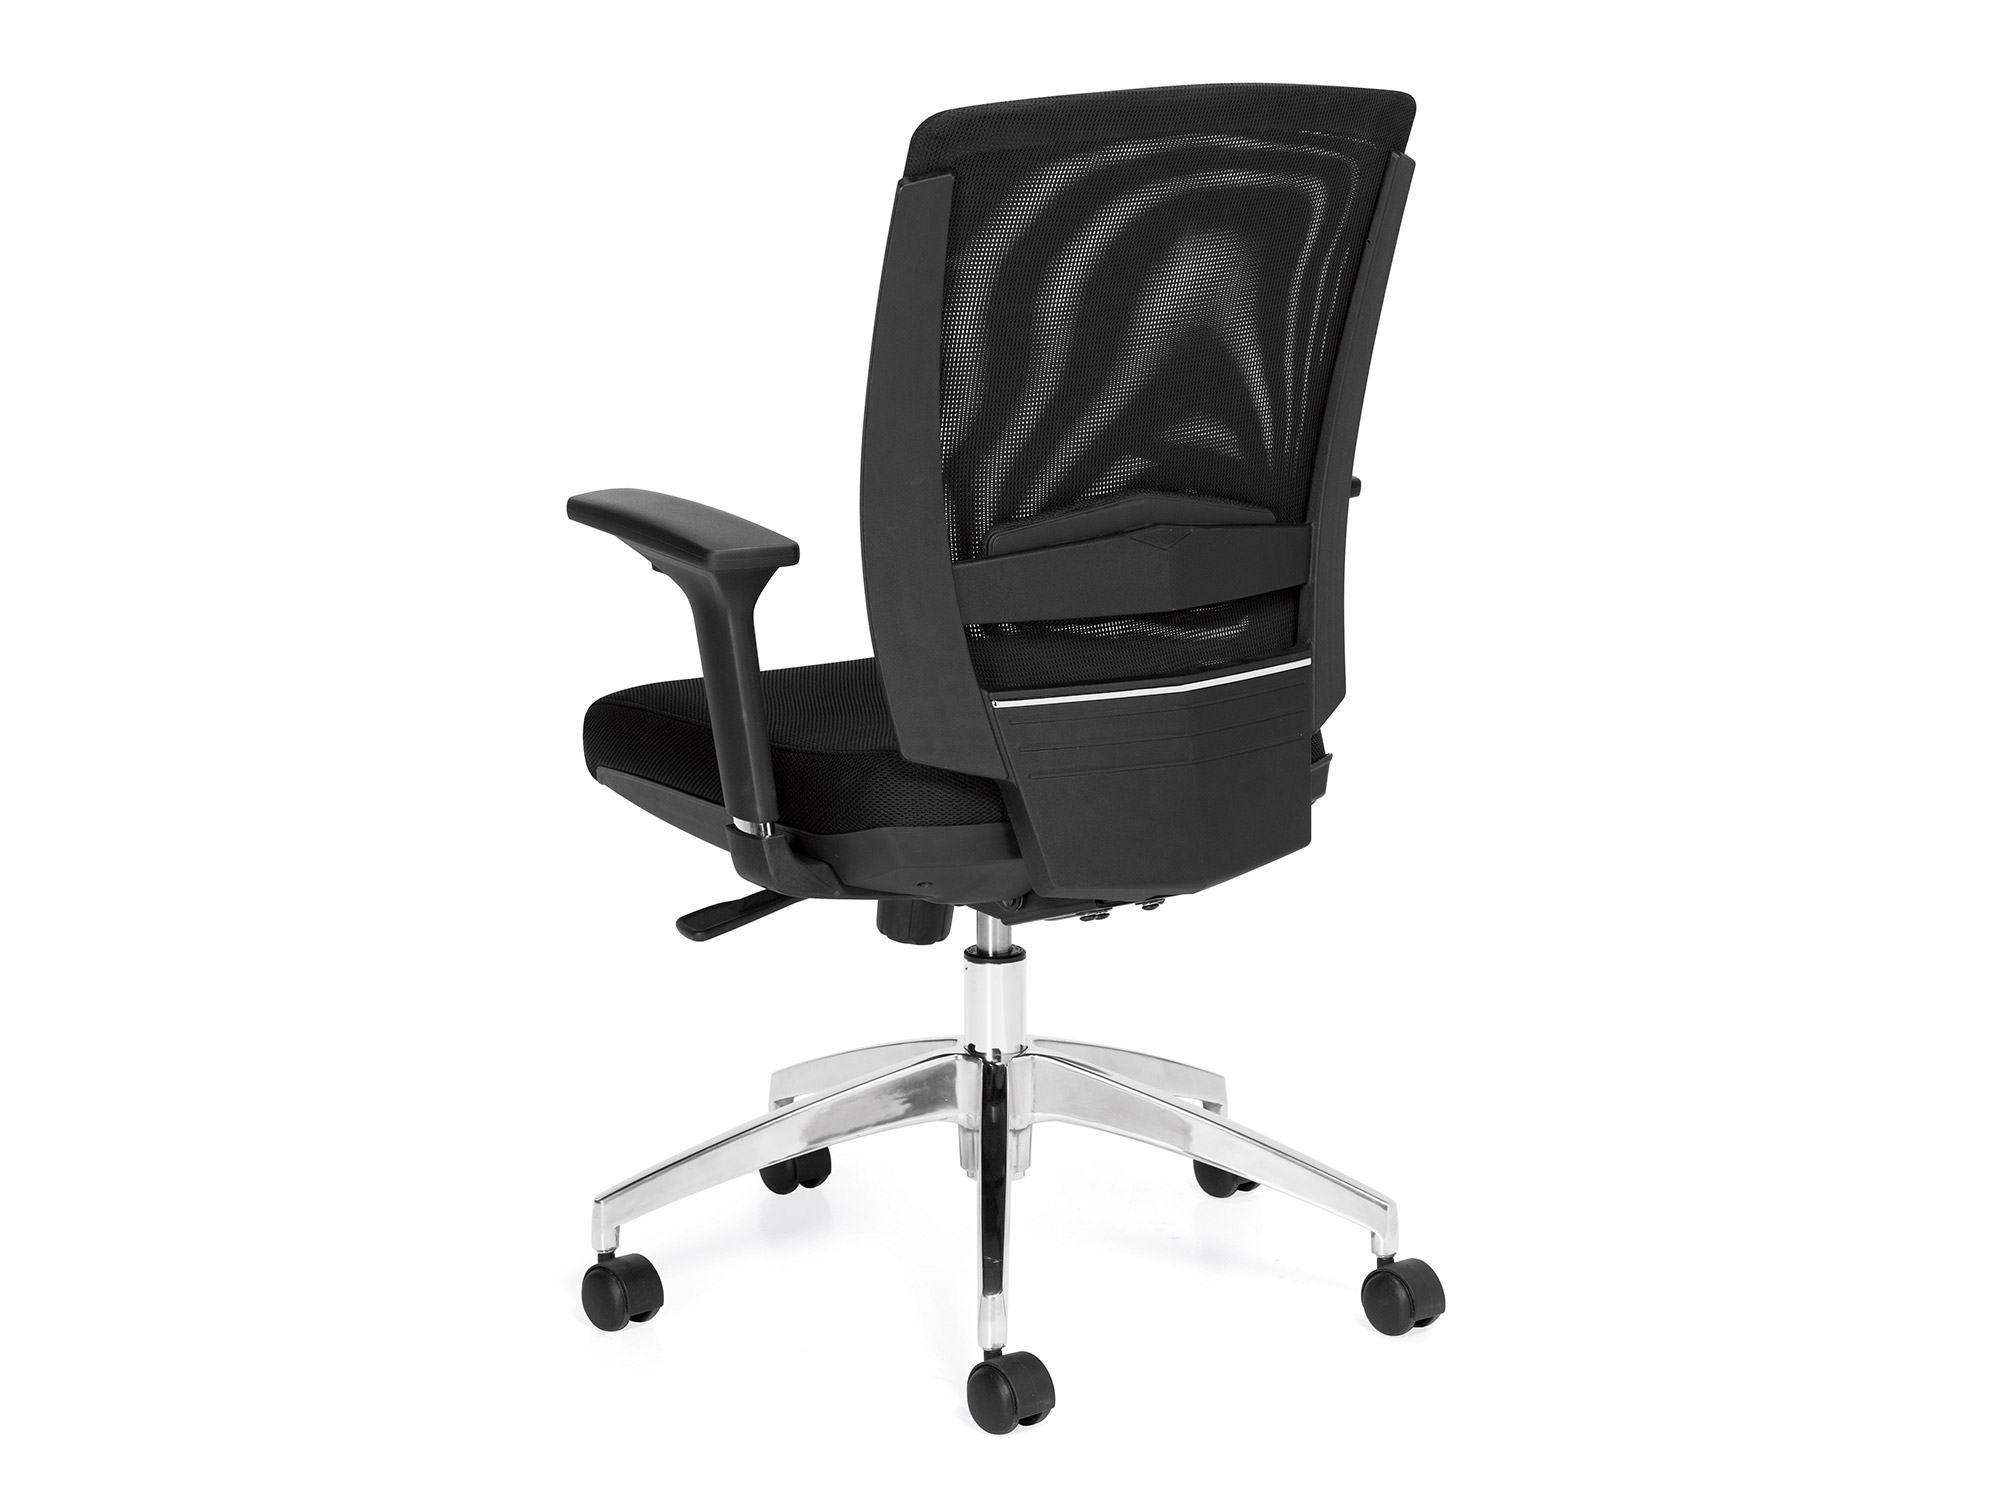 Workstation Chair fice Task Chairs Chairs For fice